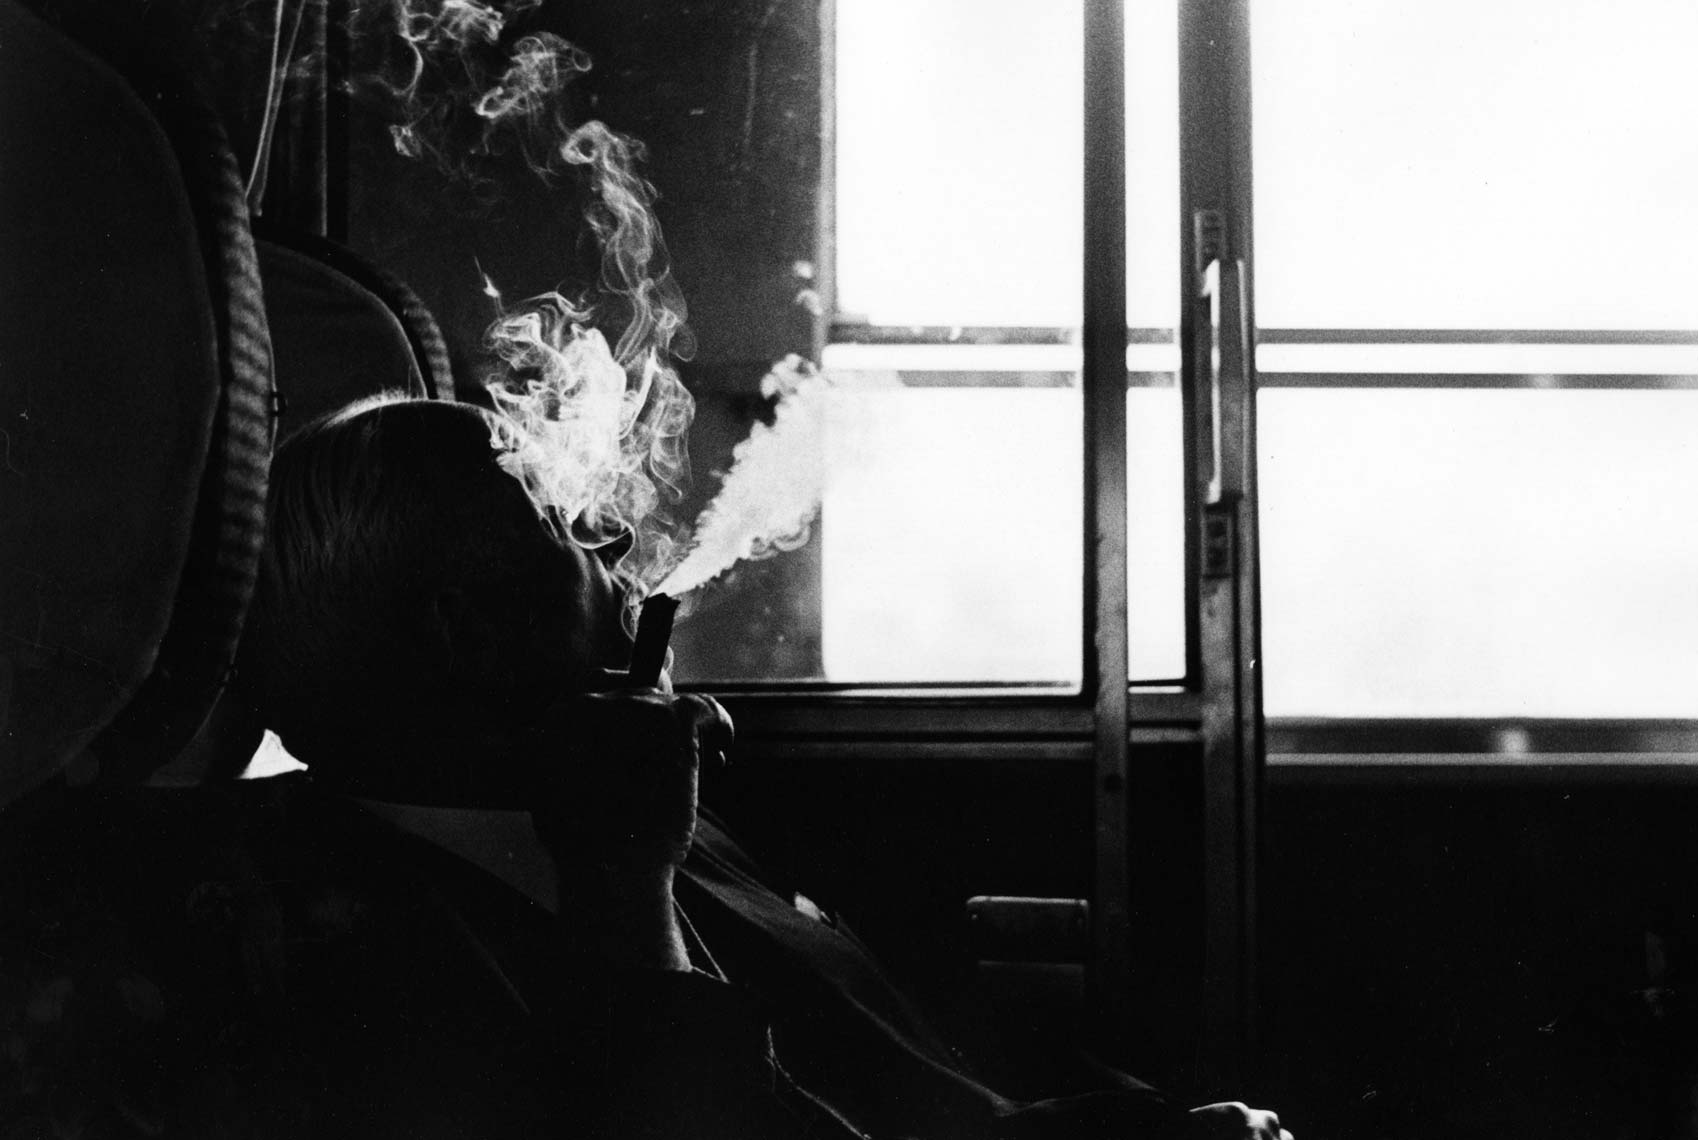 MAN WITH CIGAR ON TRAIN